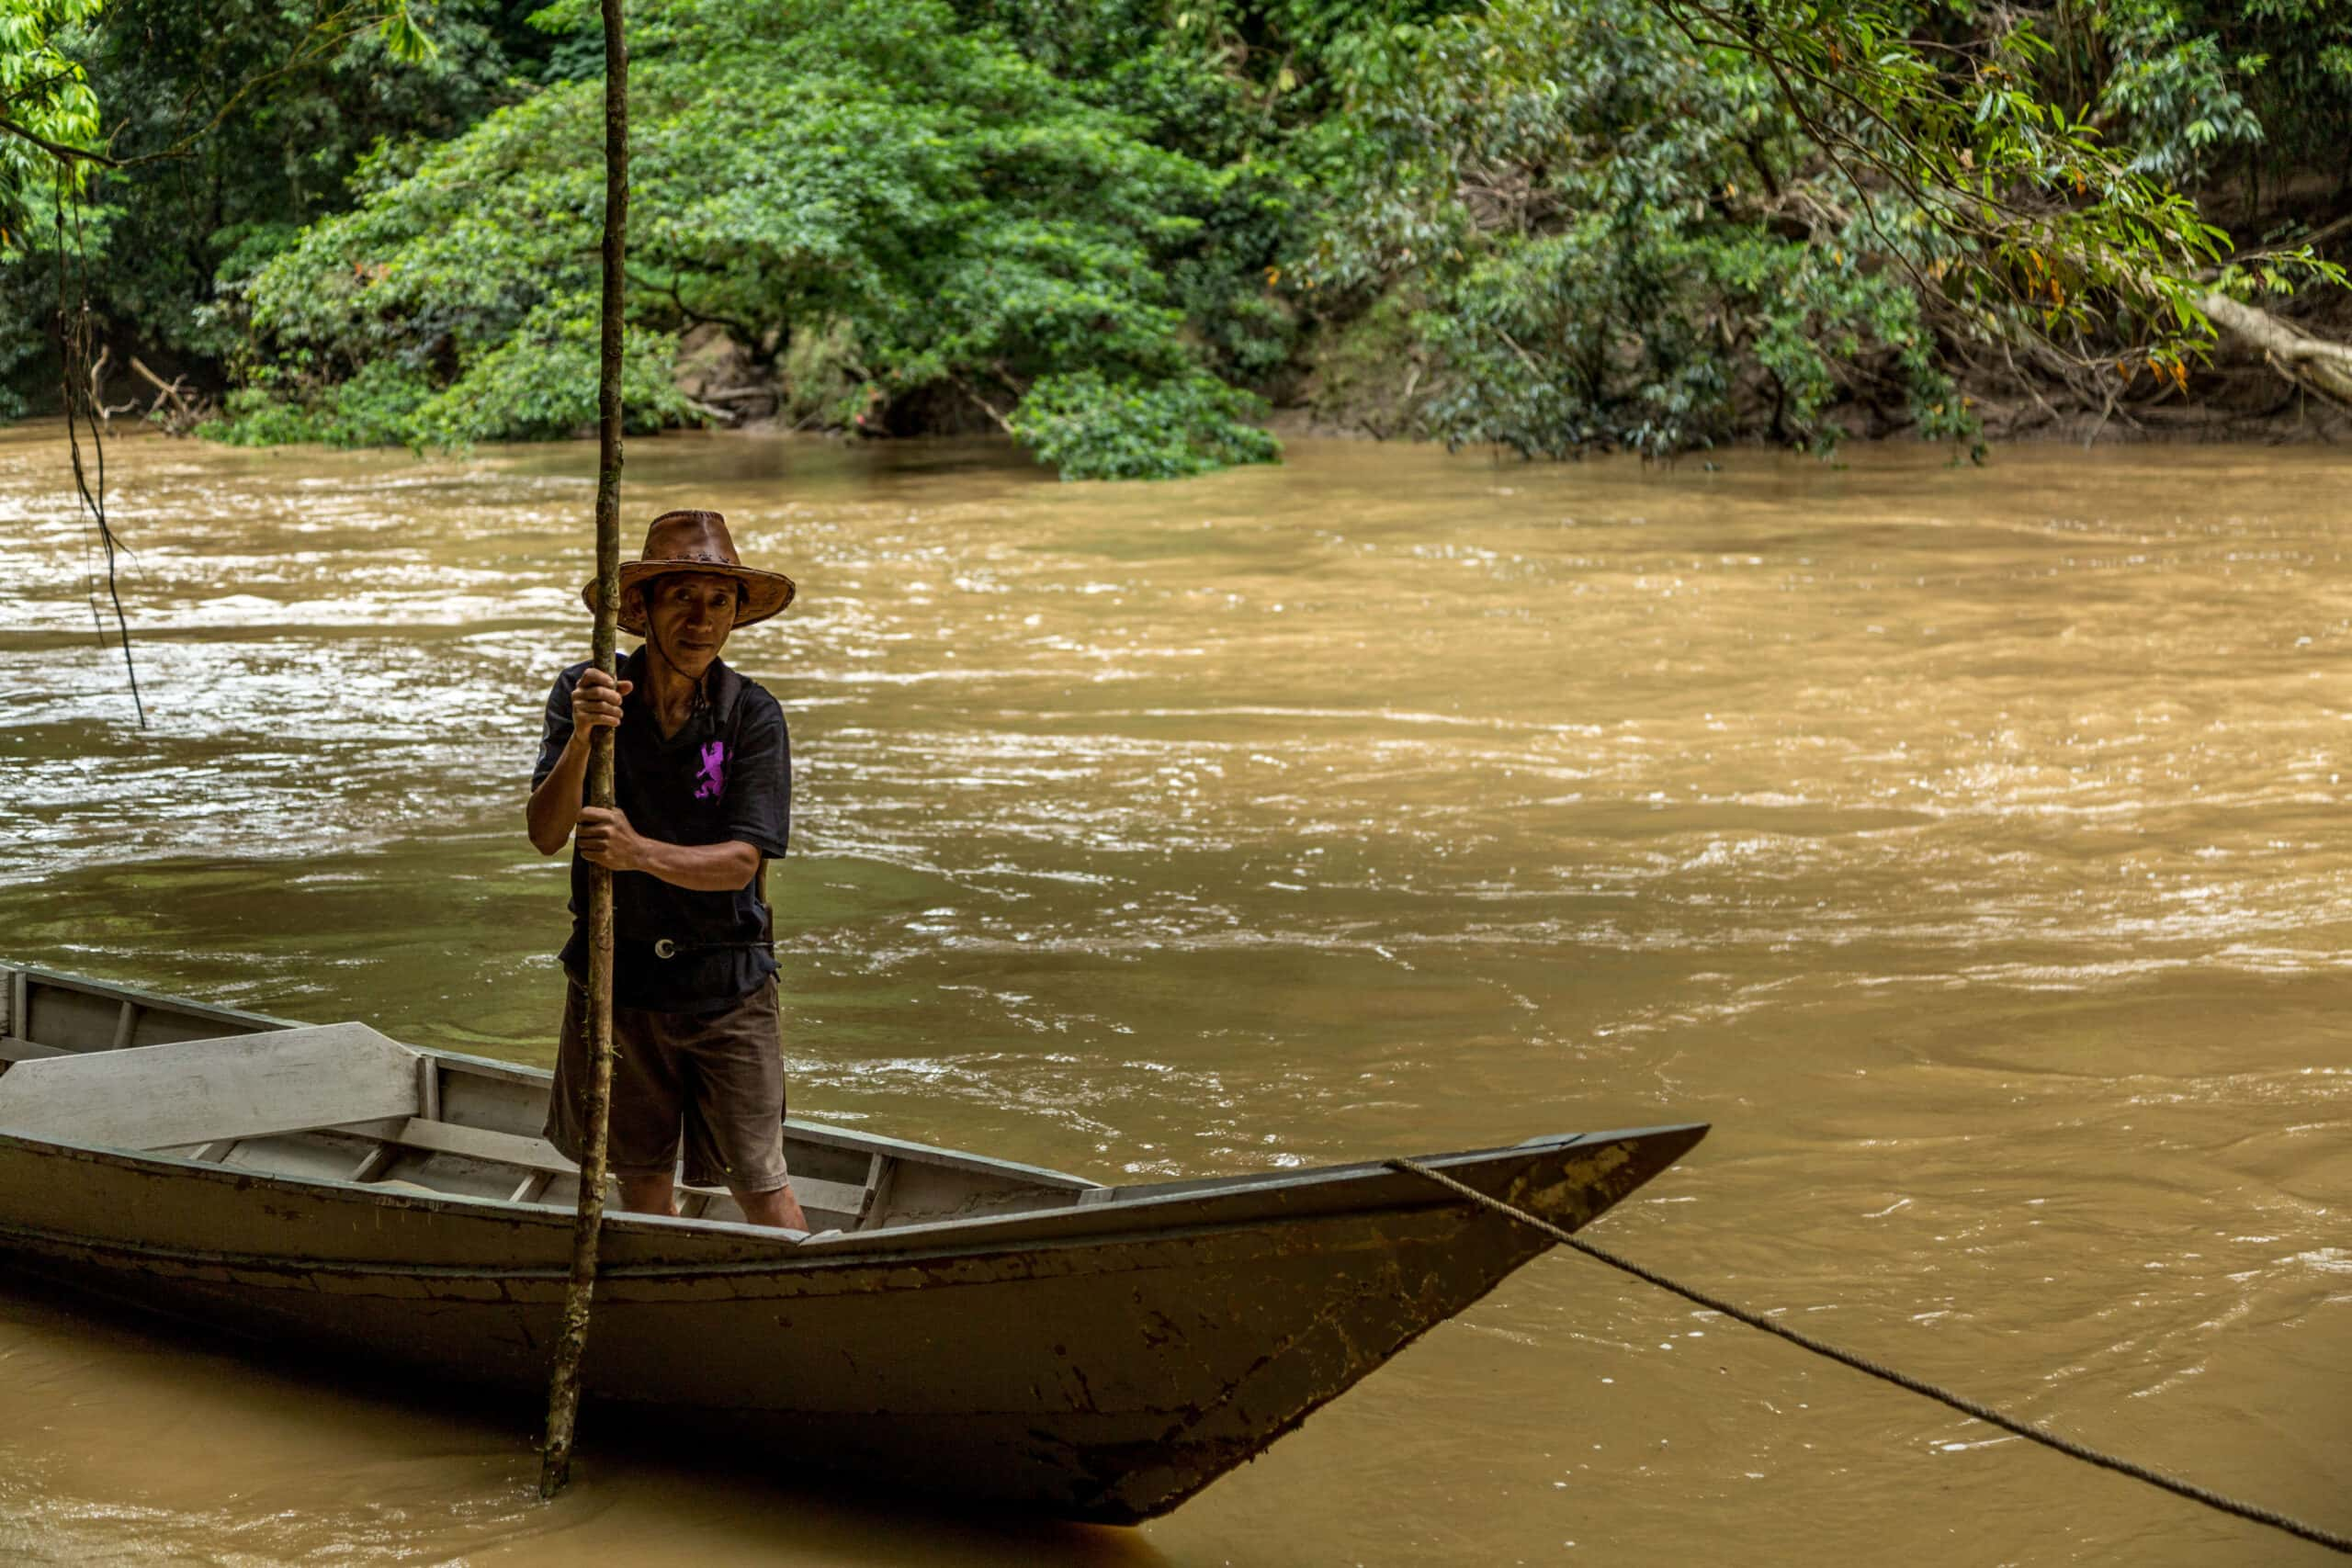 Man standing in wooden boat in the Kinabatangan River with jungle backdrop in Borneo